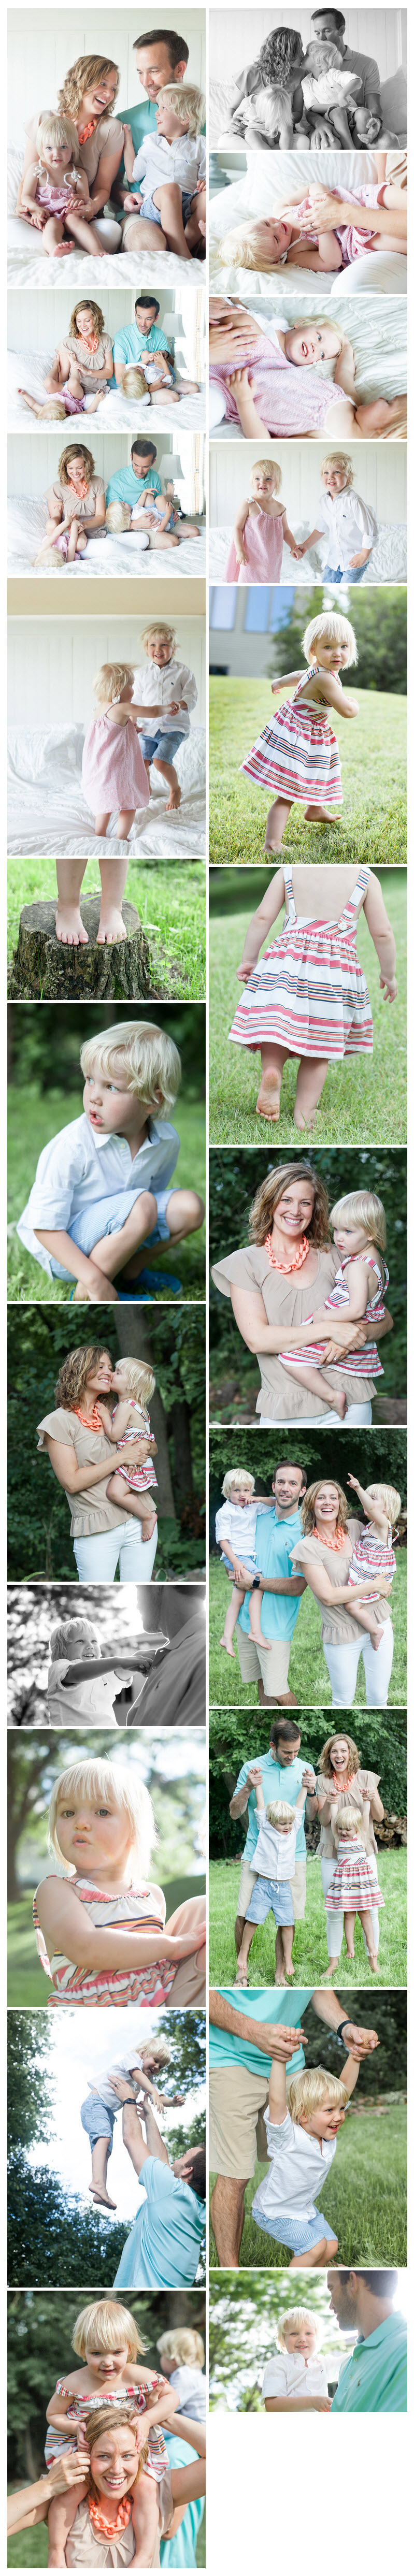 Eden Prairie family photos